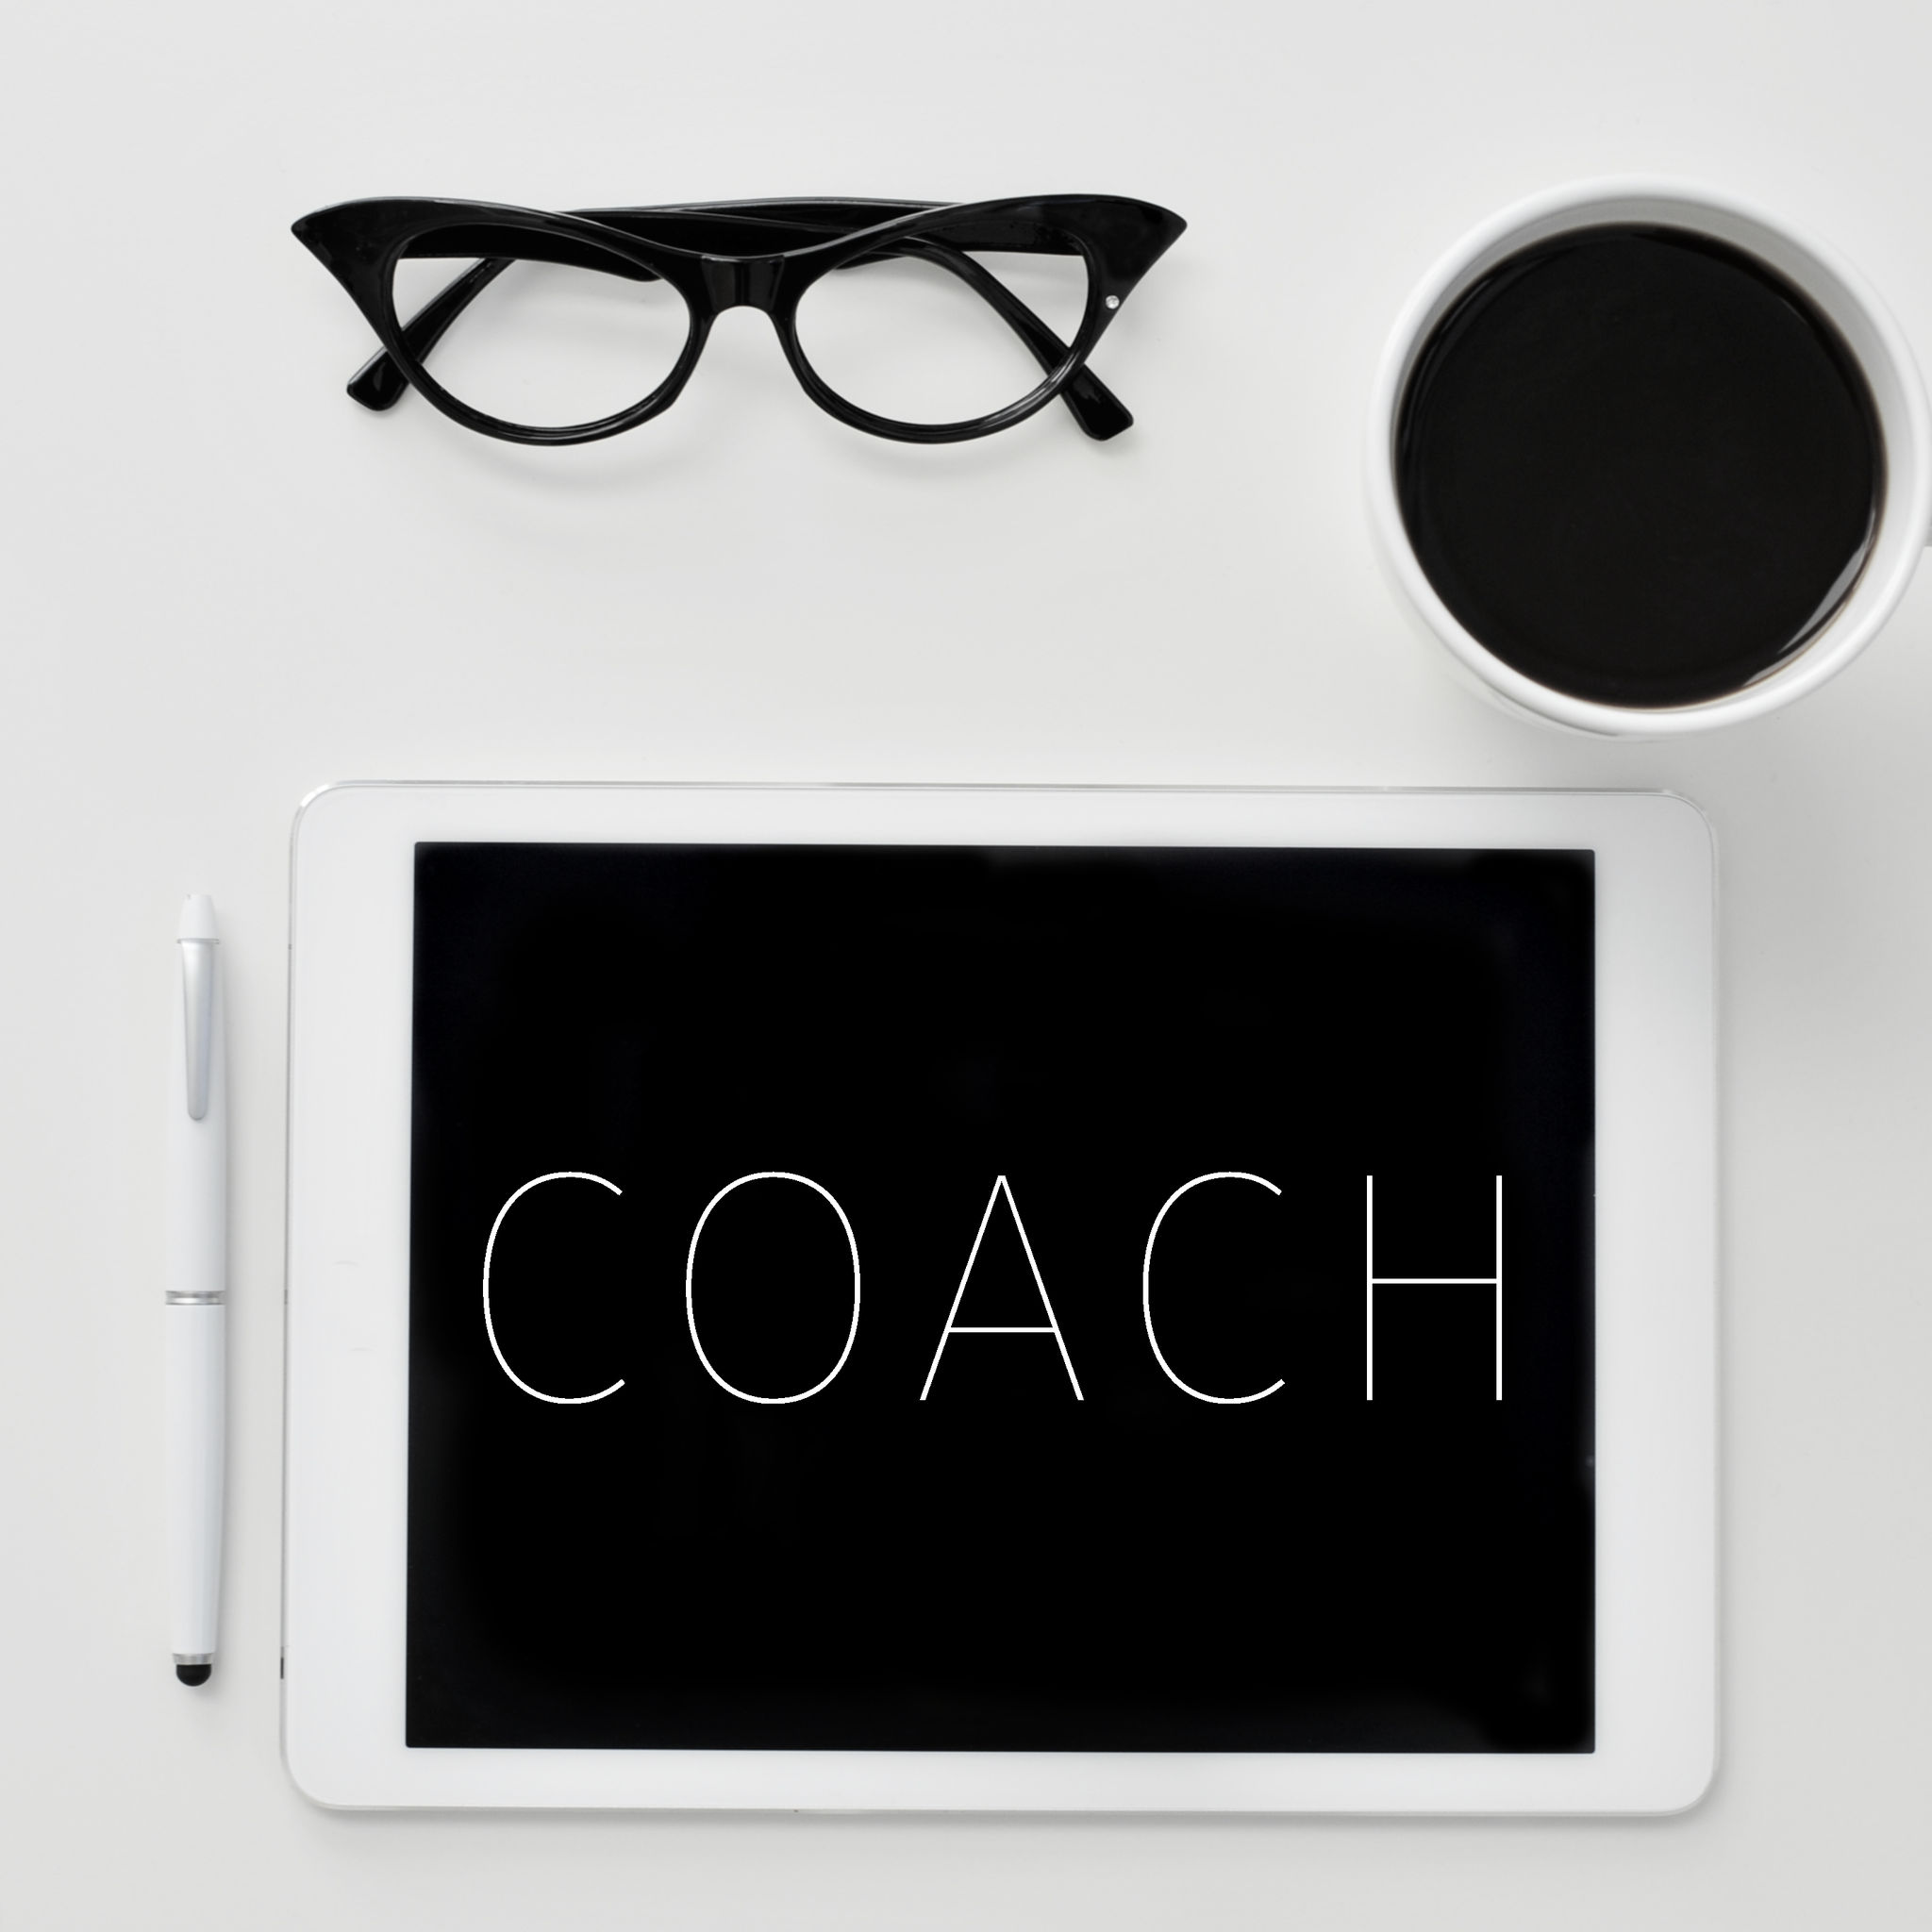 46738487 - high-angle shot of a desk with a tablet computer with the word coach written in it, a pair of women eyeglasses and a cup of coffee